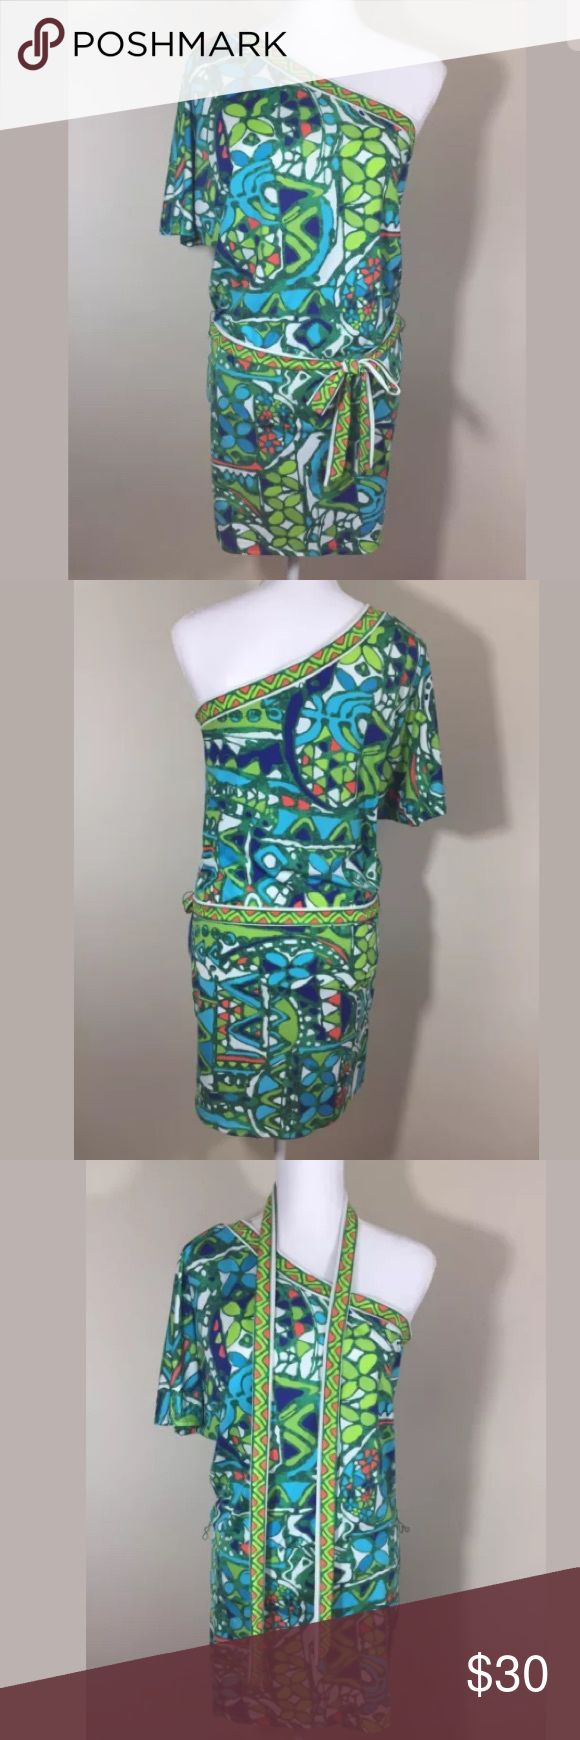 Trina Turk Bali Hai swim coverup dress Small EUC Trina Turk Bali Hai one shoulder swimsuit coverup with removable belt, size small. Perfect for summer vacations! Comes from a smoke free, pet free home. Please ask all questions before purchasing. Trina Turk Swim Coverups